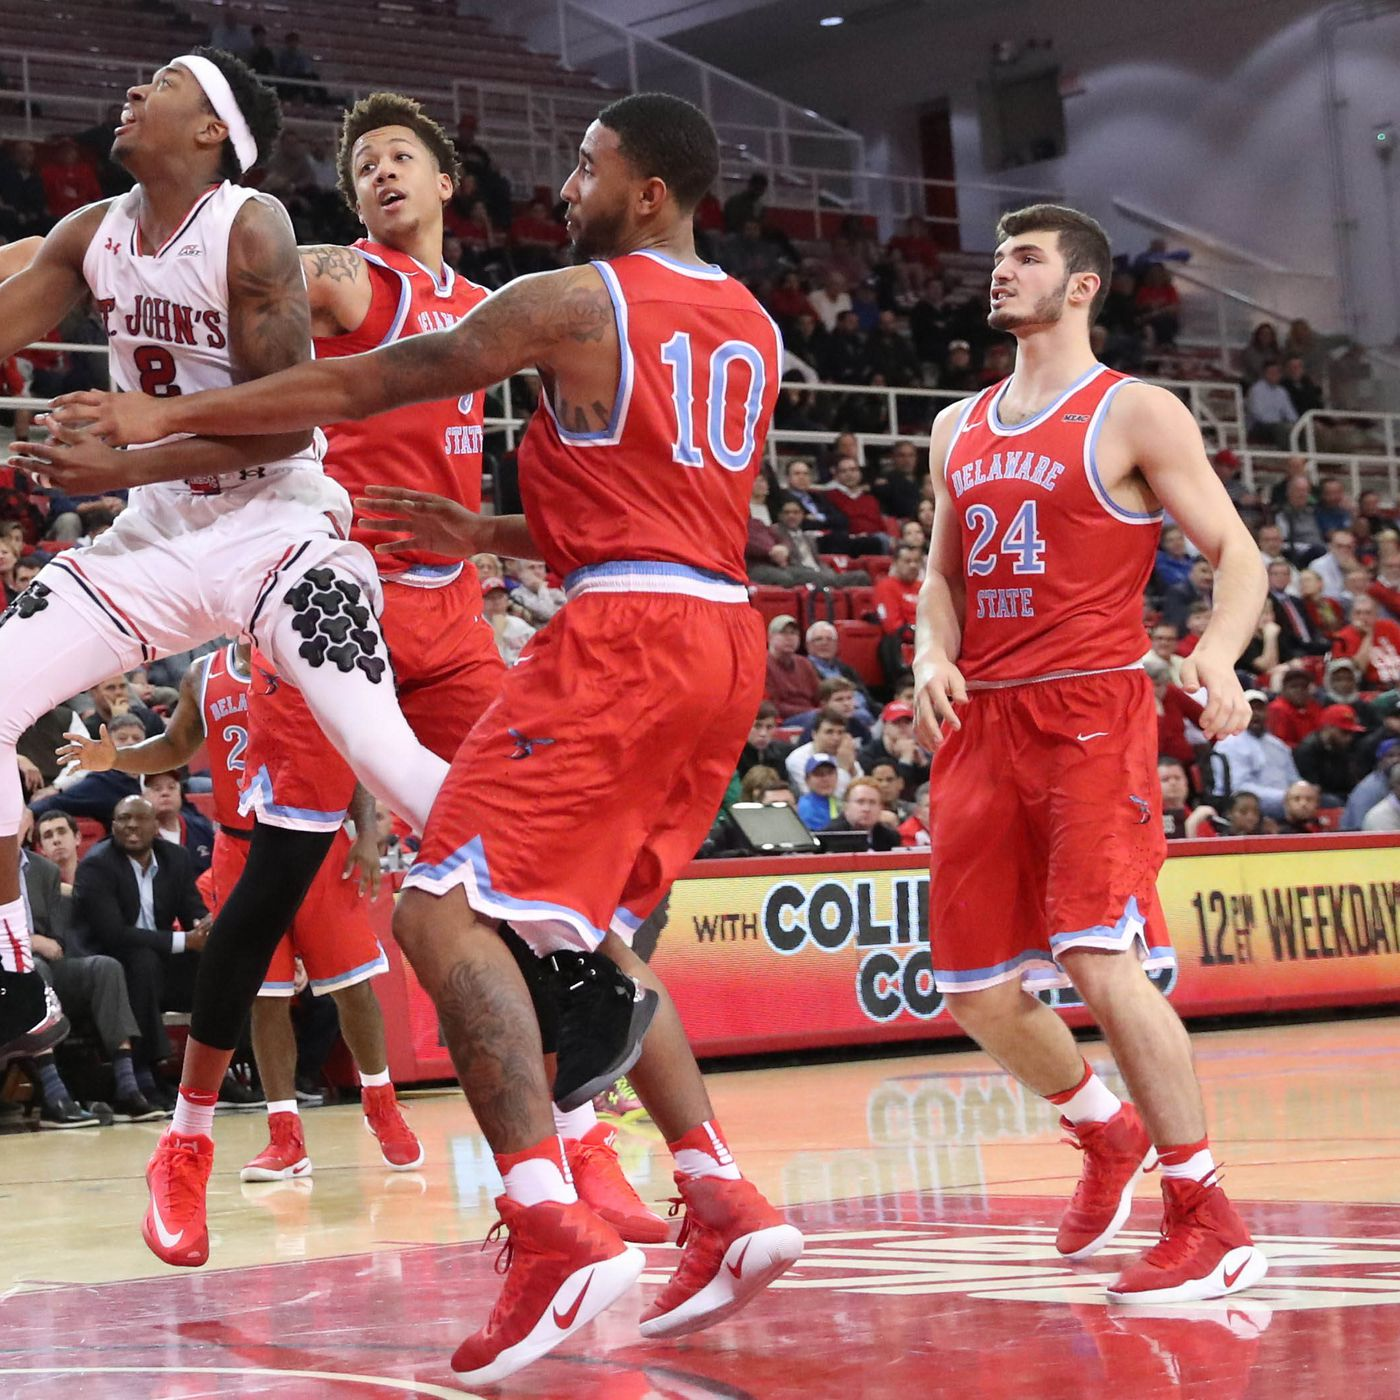 newest collection 73f8c 9104f Game thread: St. John's welcomes Cal State Northridge ...